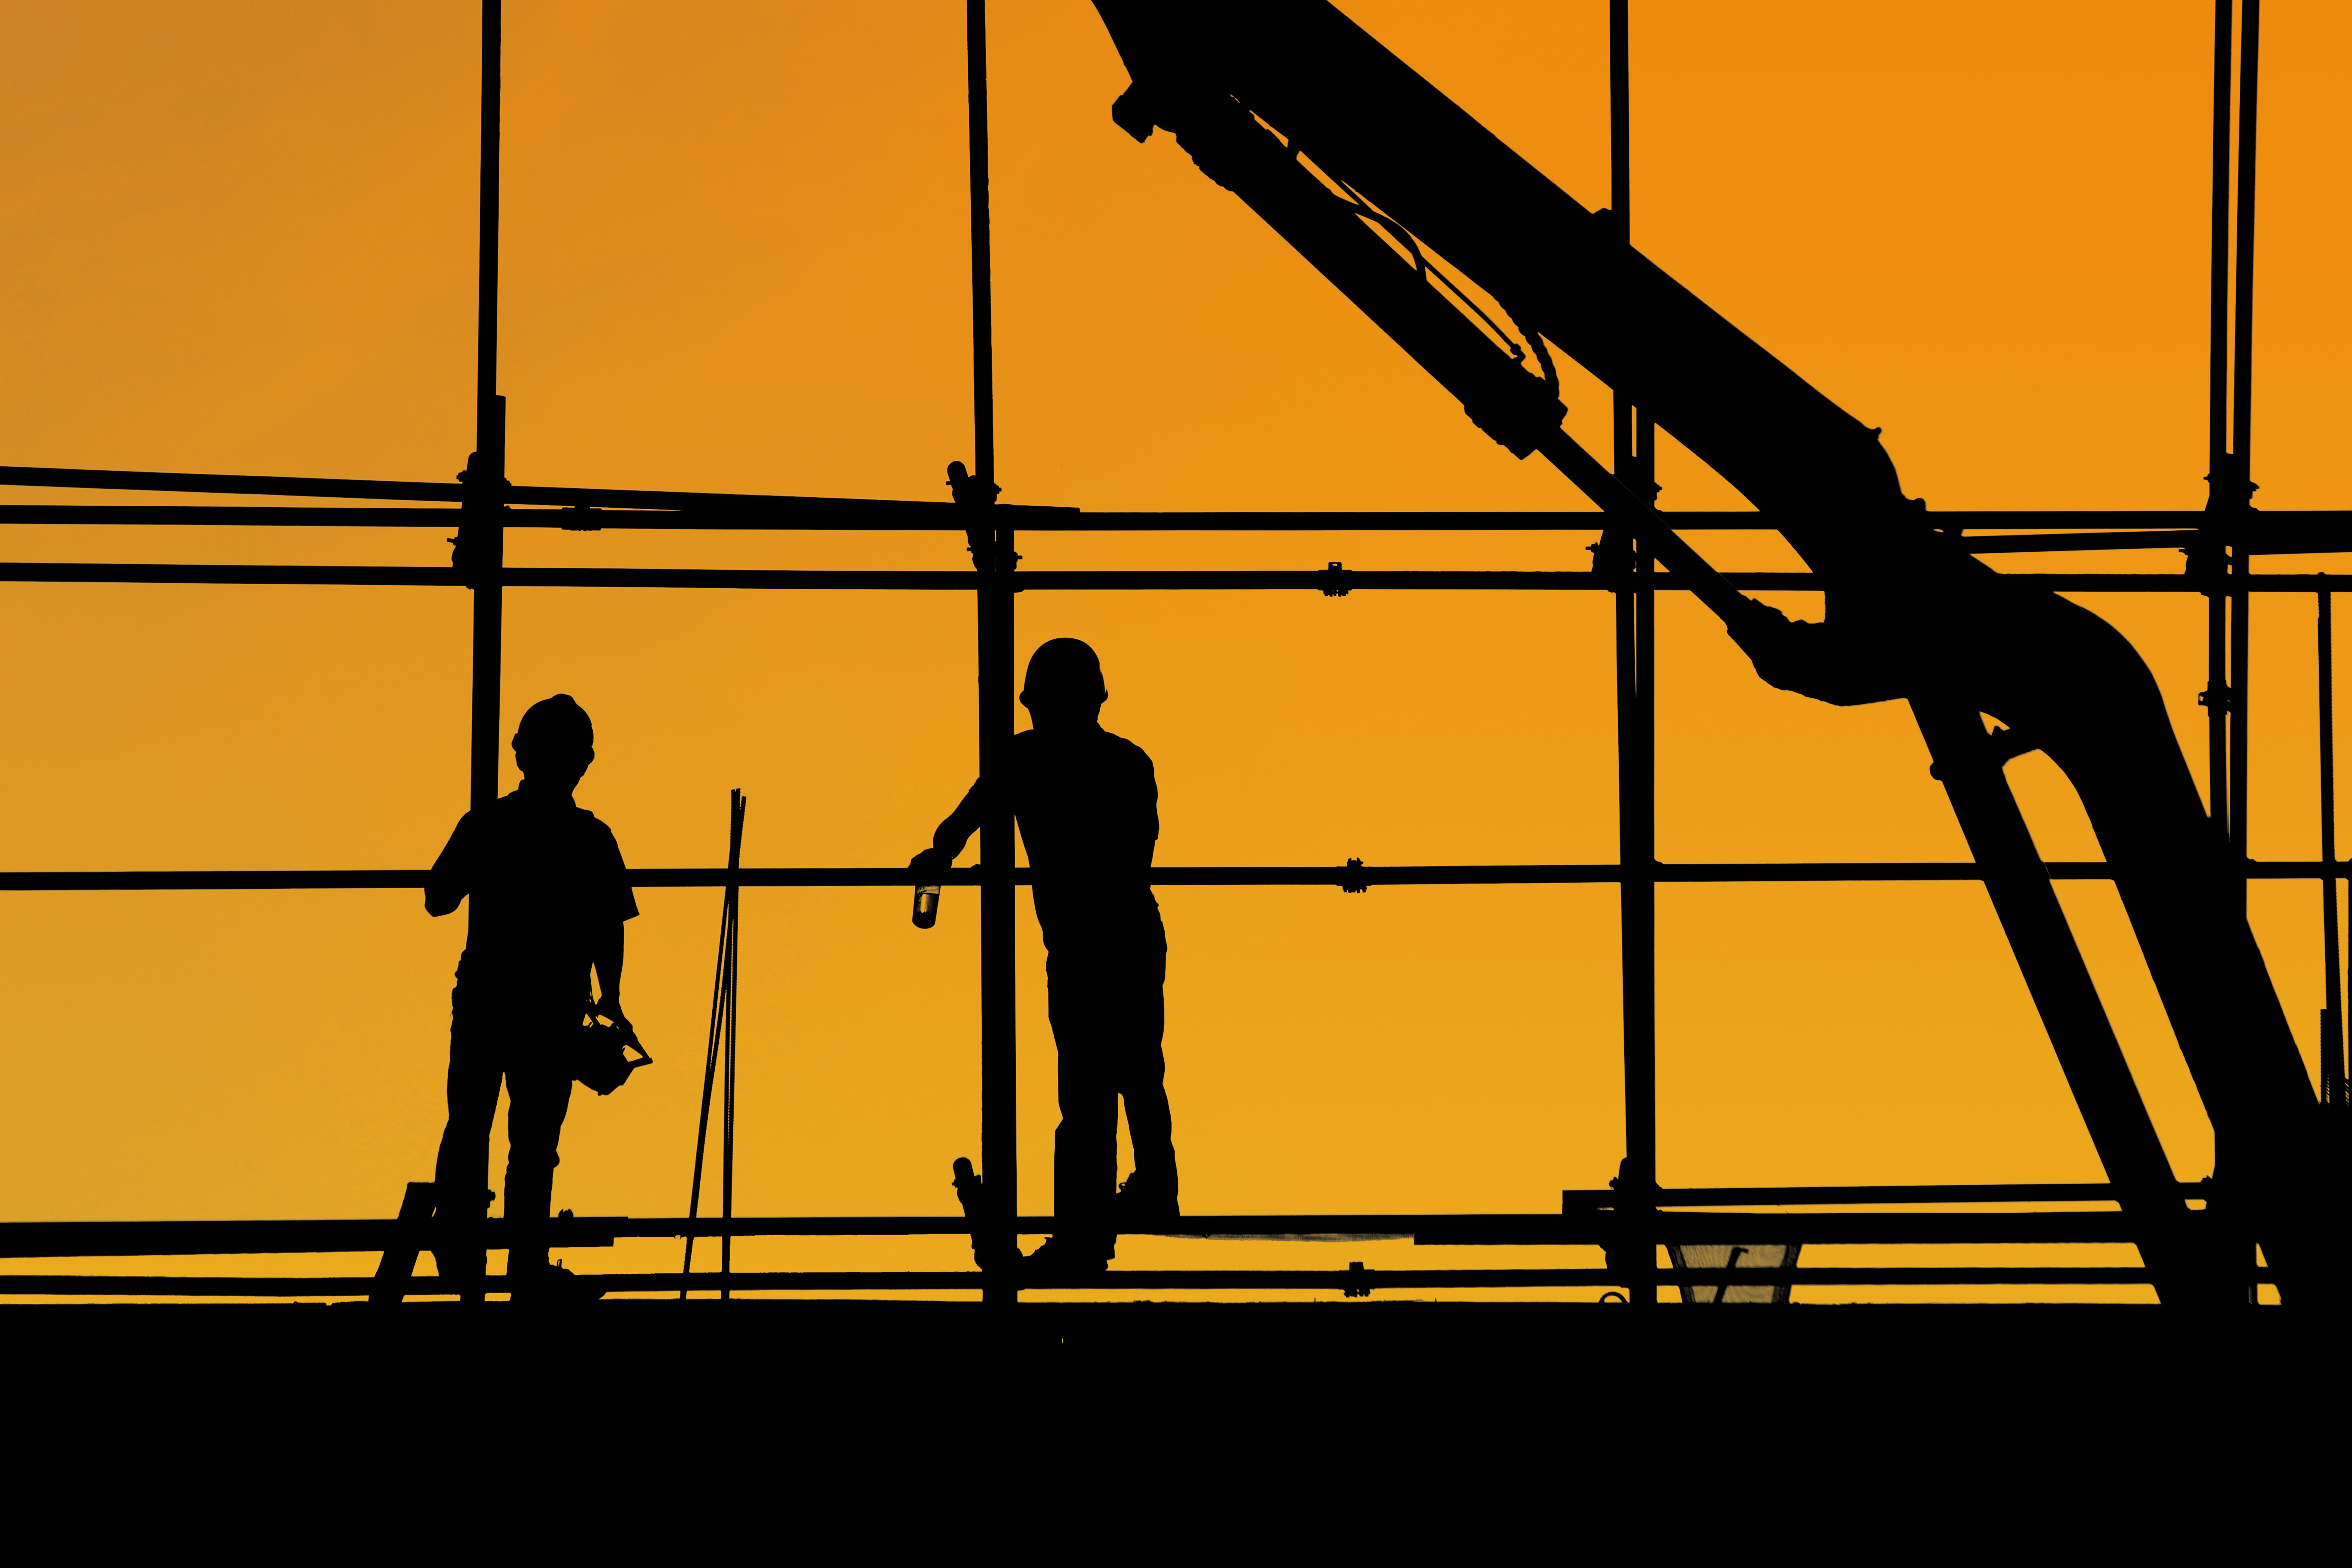 Silhouette of two construction workers